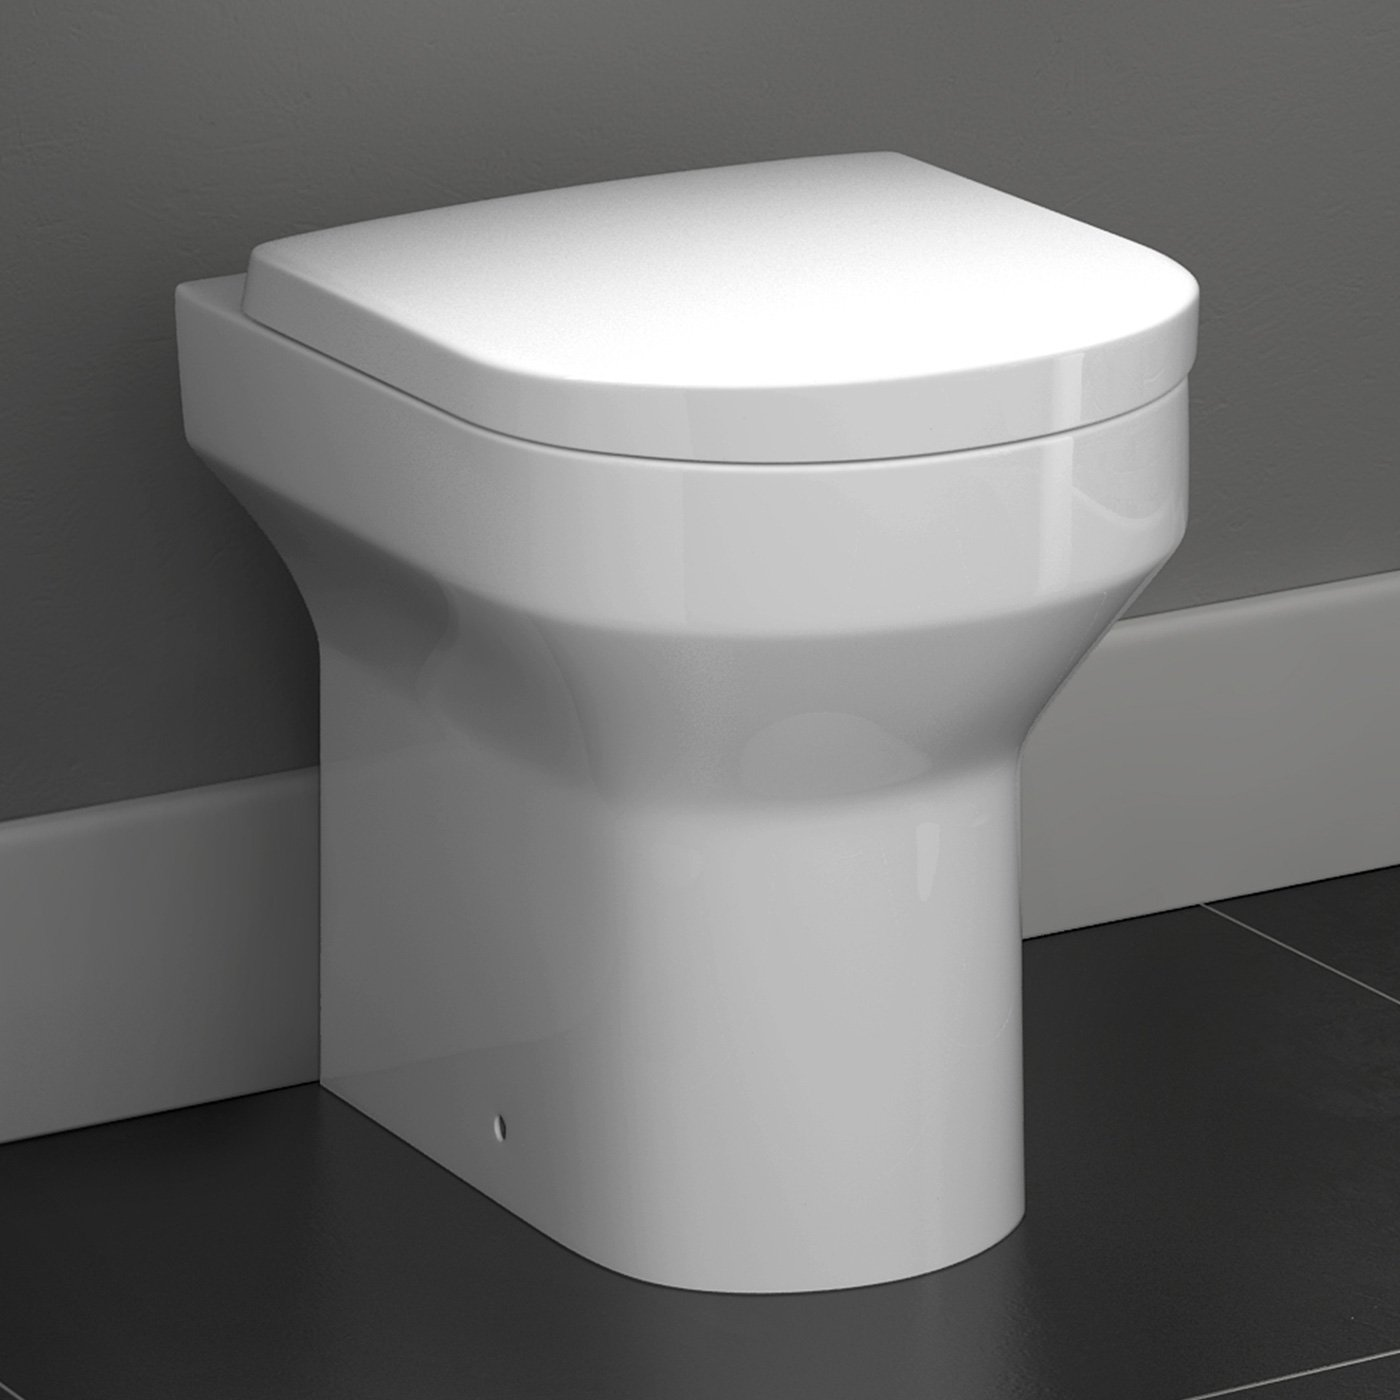 Luxury Back To Wall Toilet Pan & Soft Close Seat Modern Ceramic Bathroom WC iBathUK